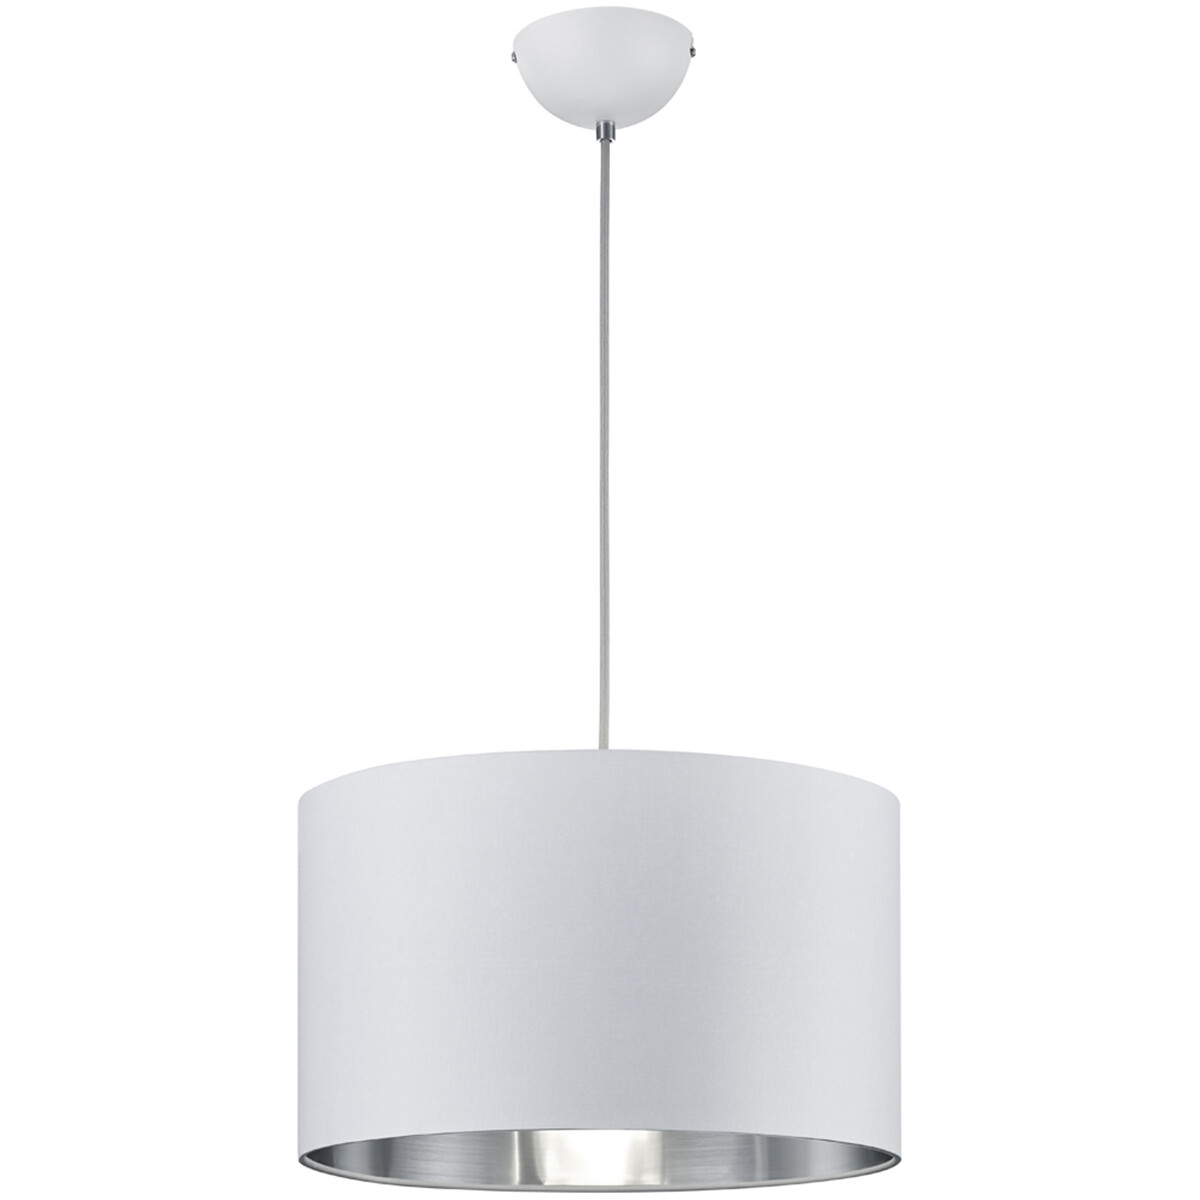 LED Hanglamp - Hangverlichting - Trion Hostons - E27 Fitting - Rond - Mat Wit - Textiel